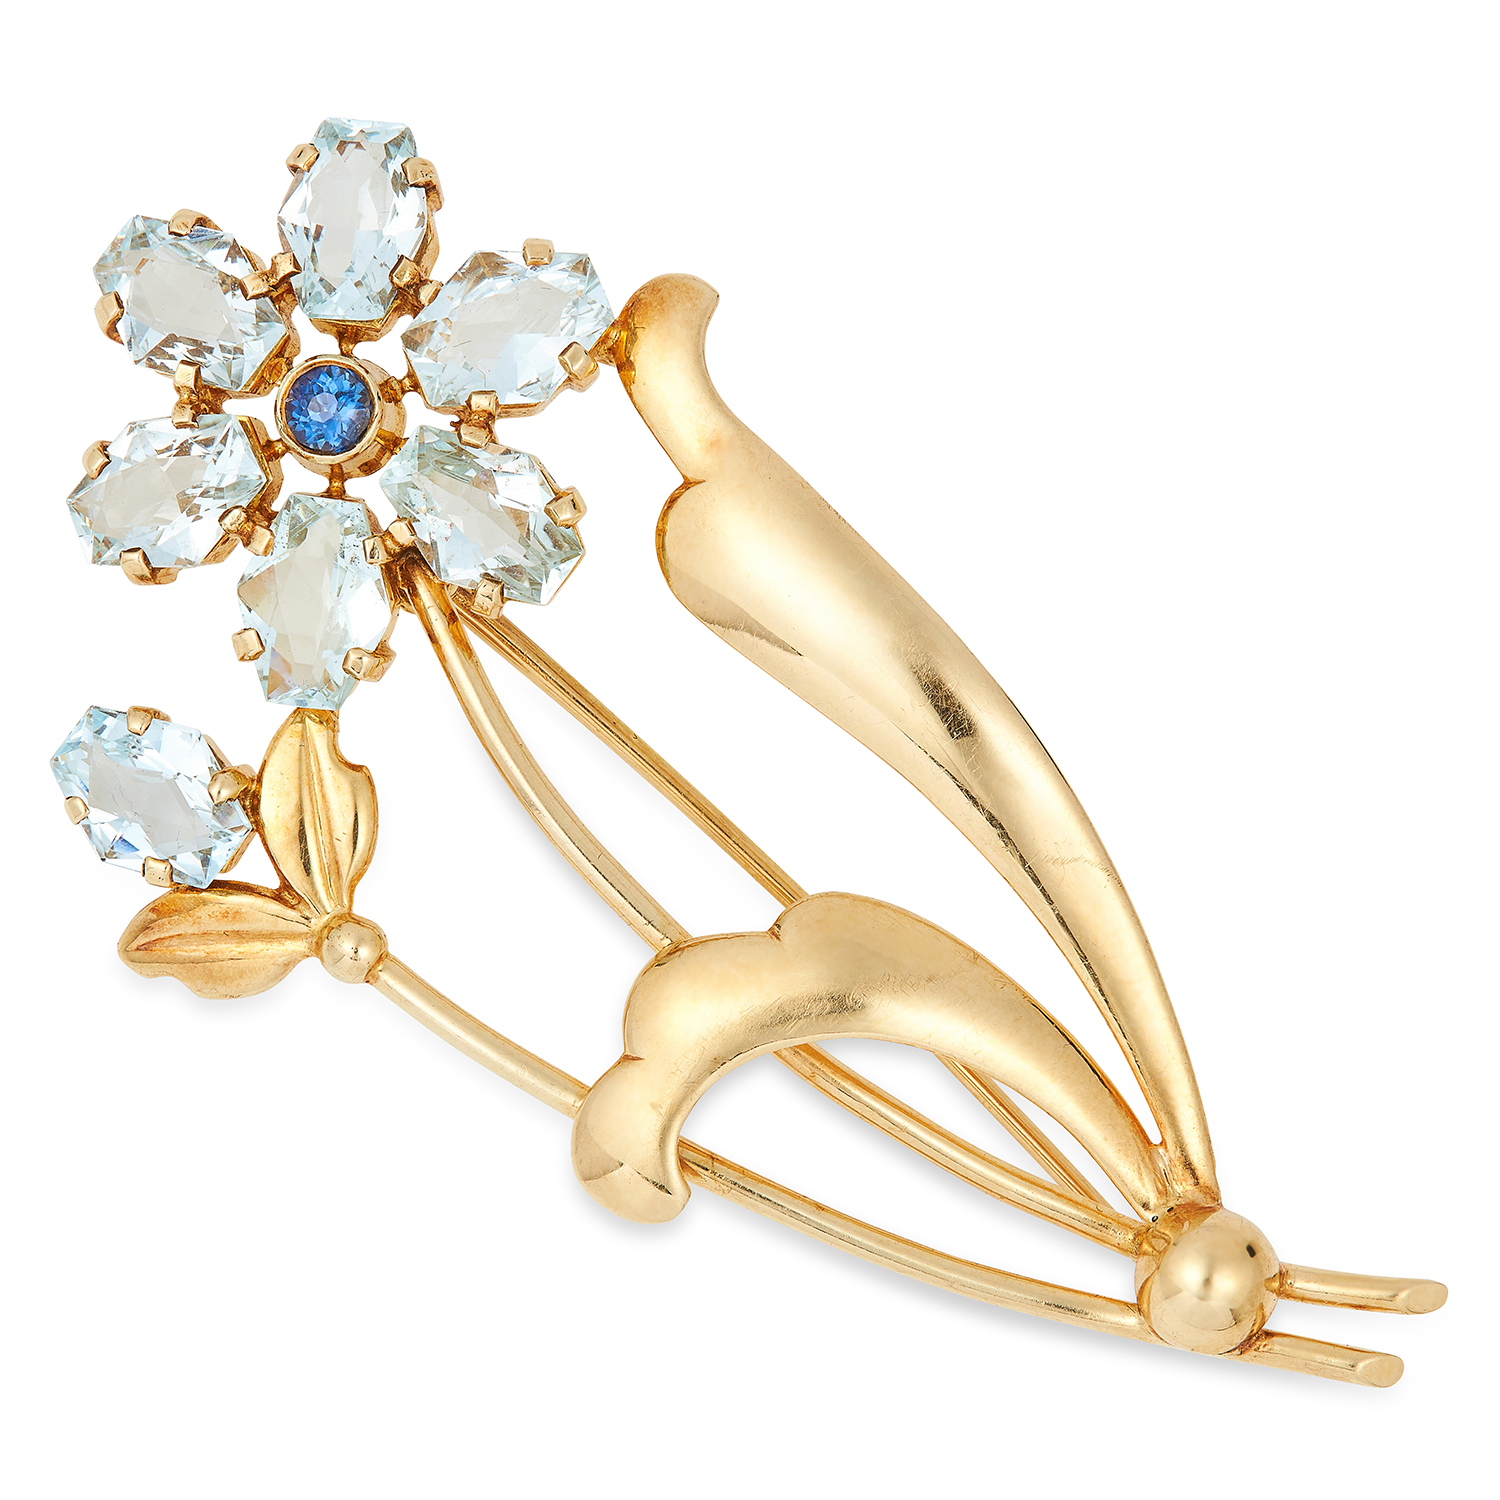 VINTAGE AQUAMARINE AND SAPPHIRE FLOWER BROOCH set with fancy 11cut aquamarines and a round cut